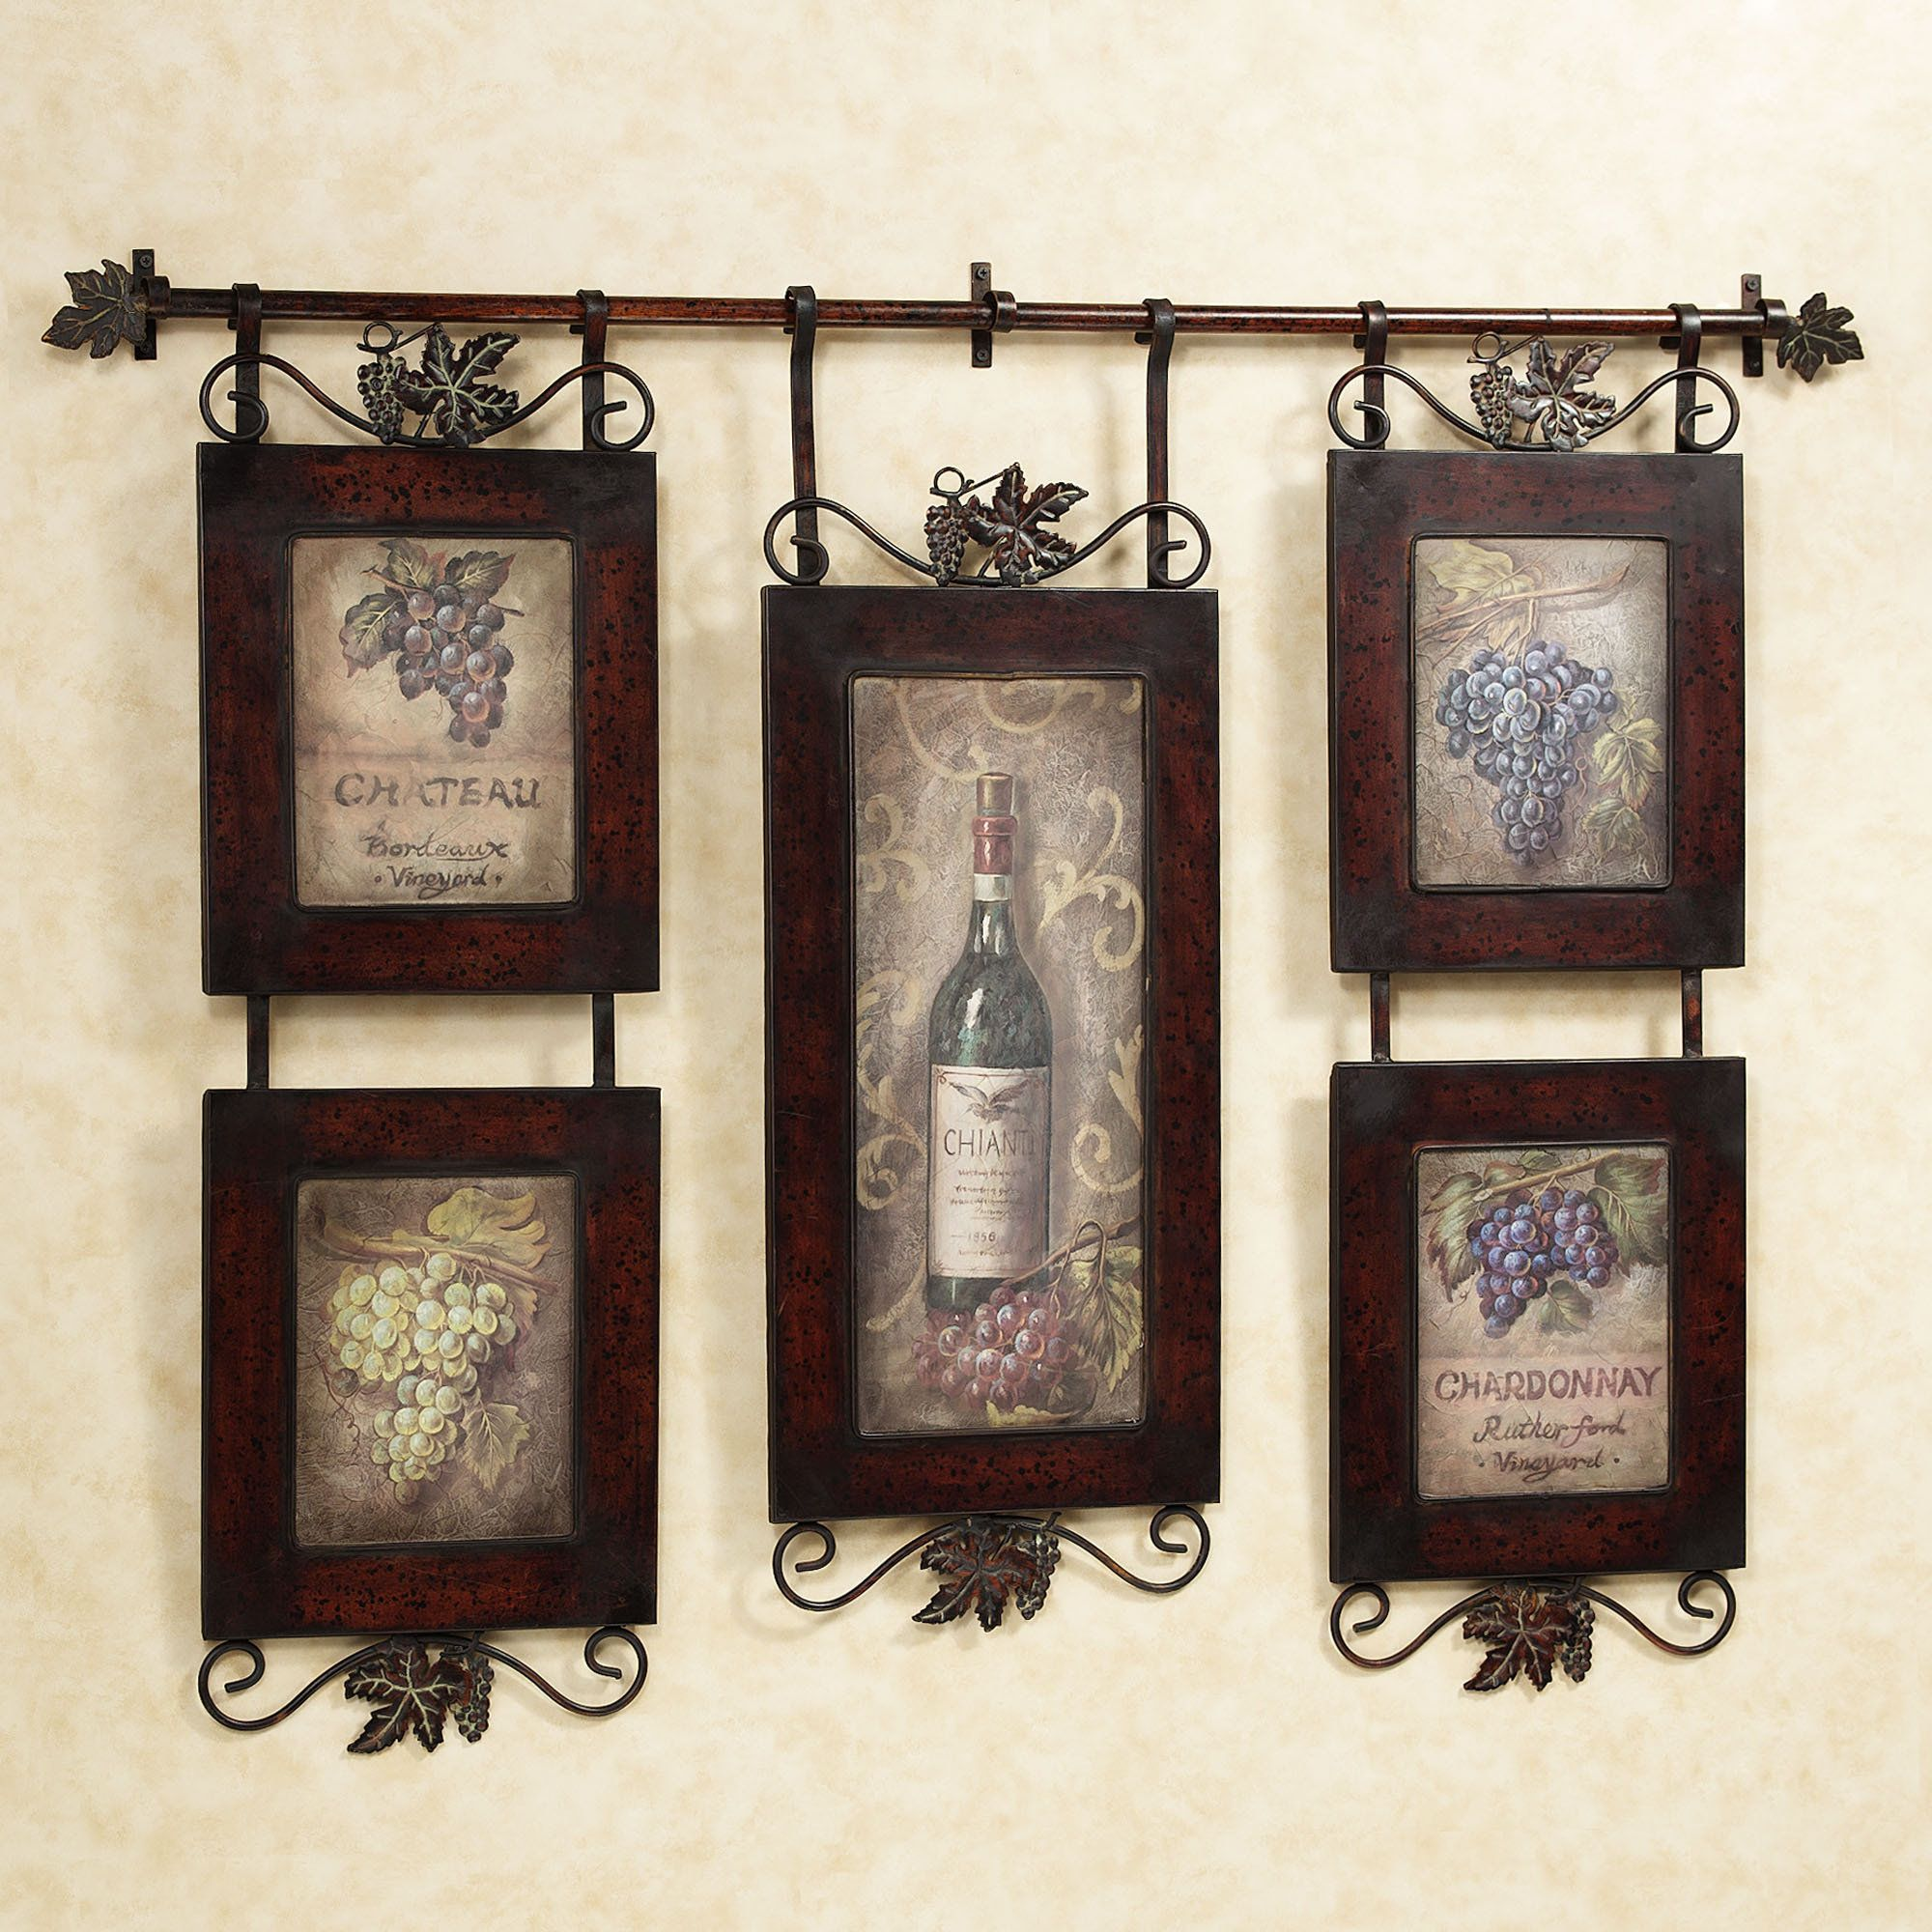 Wine Decor Wall Art emilion wine wall art | wall decor, kitchens and walls